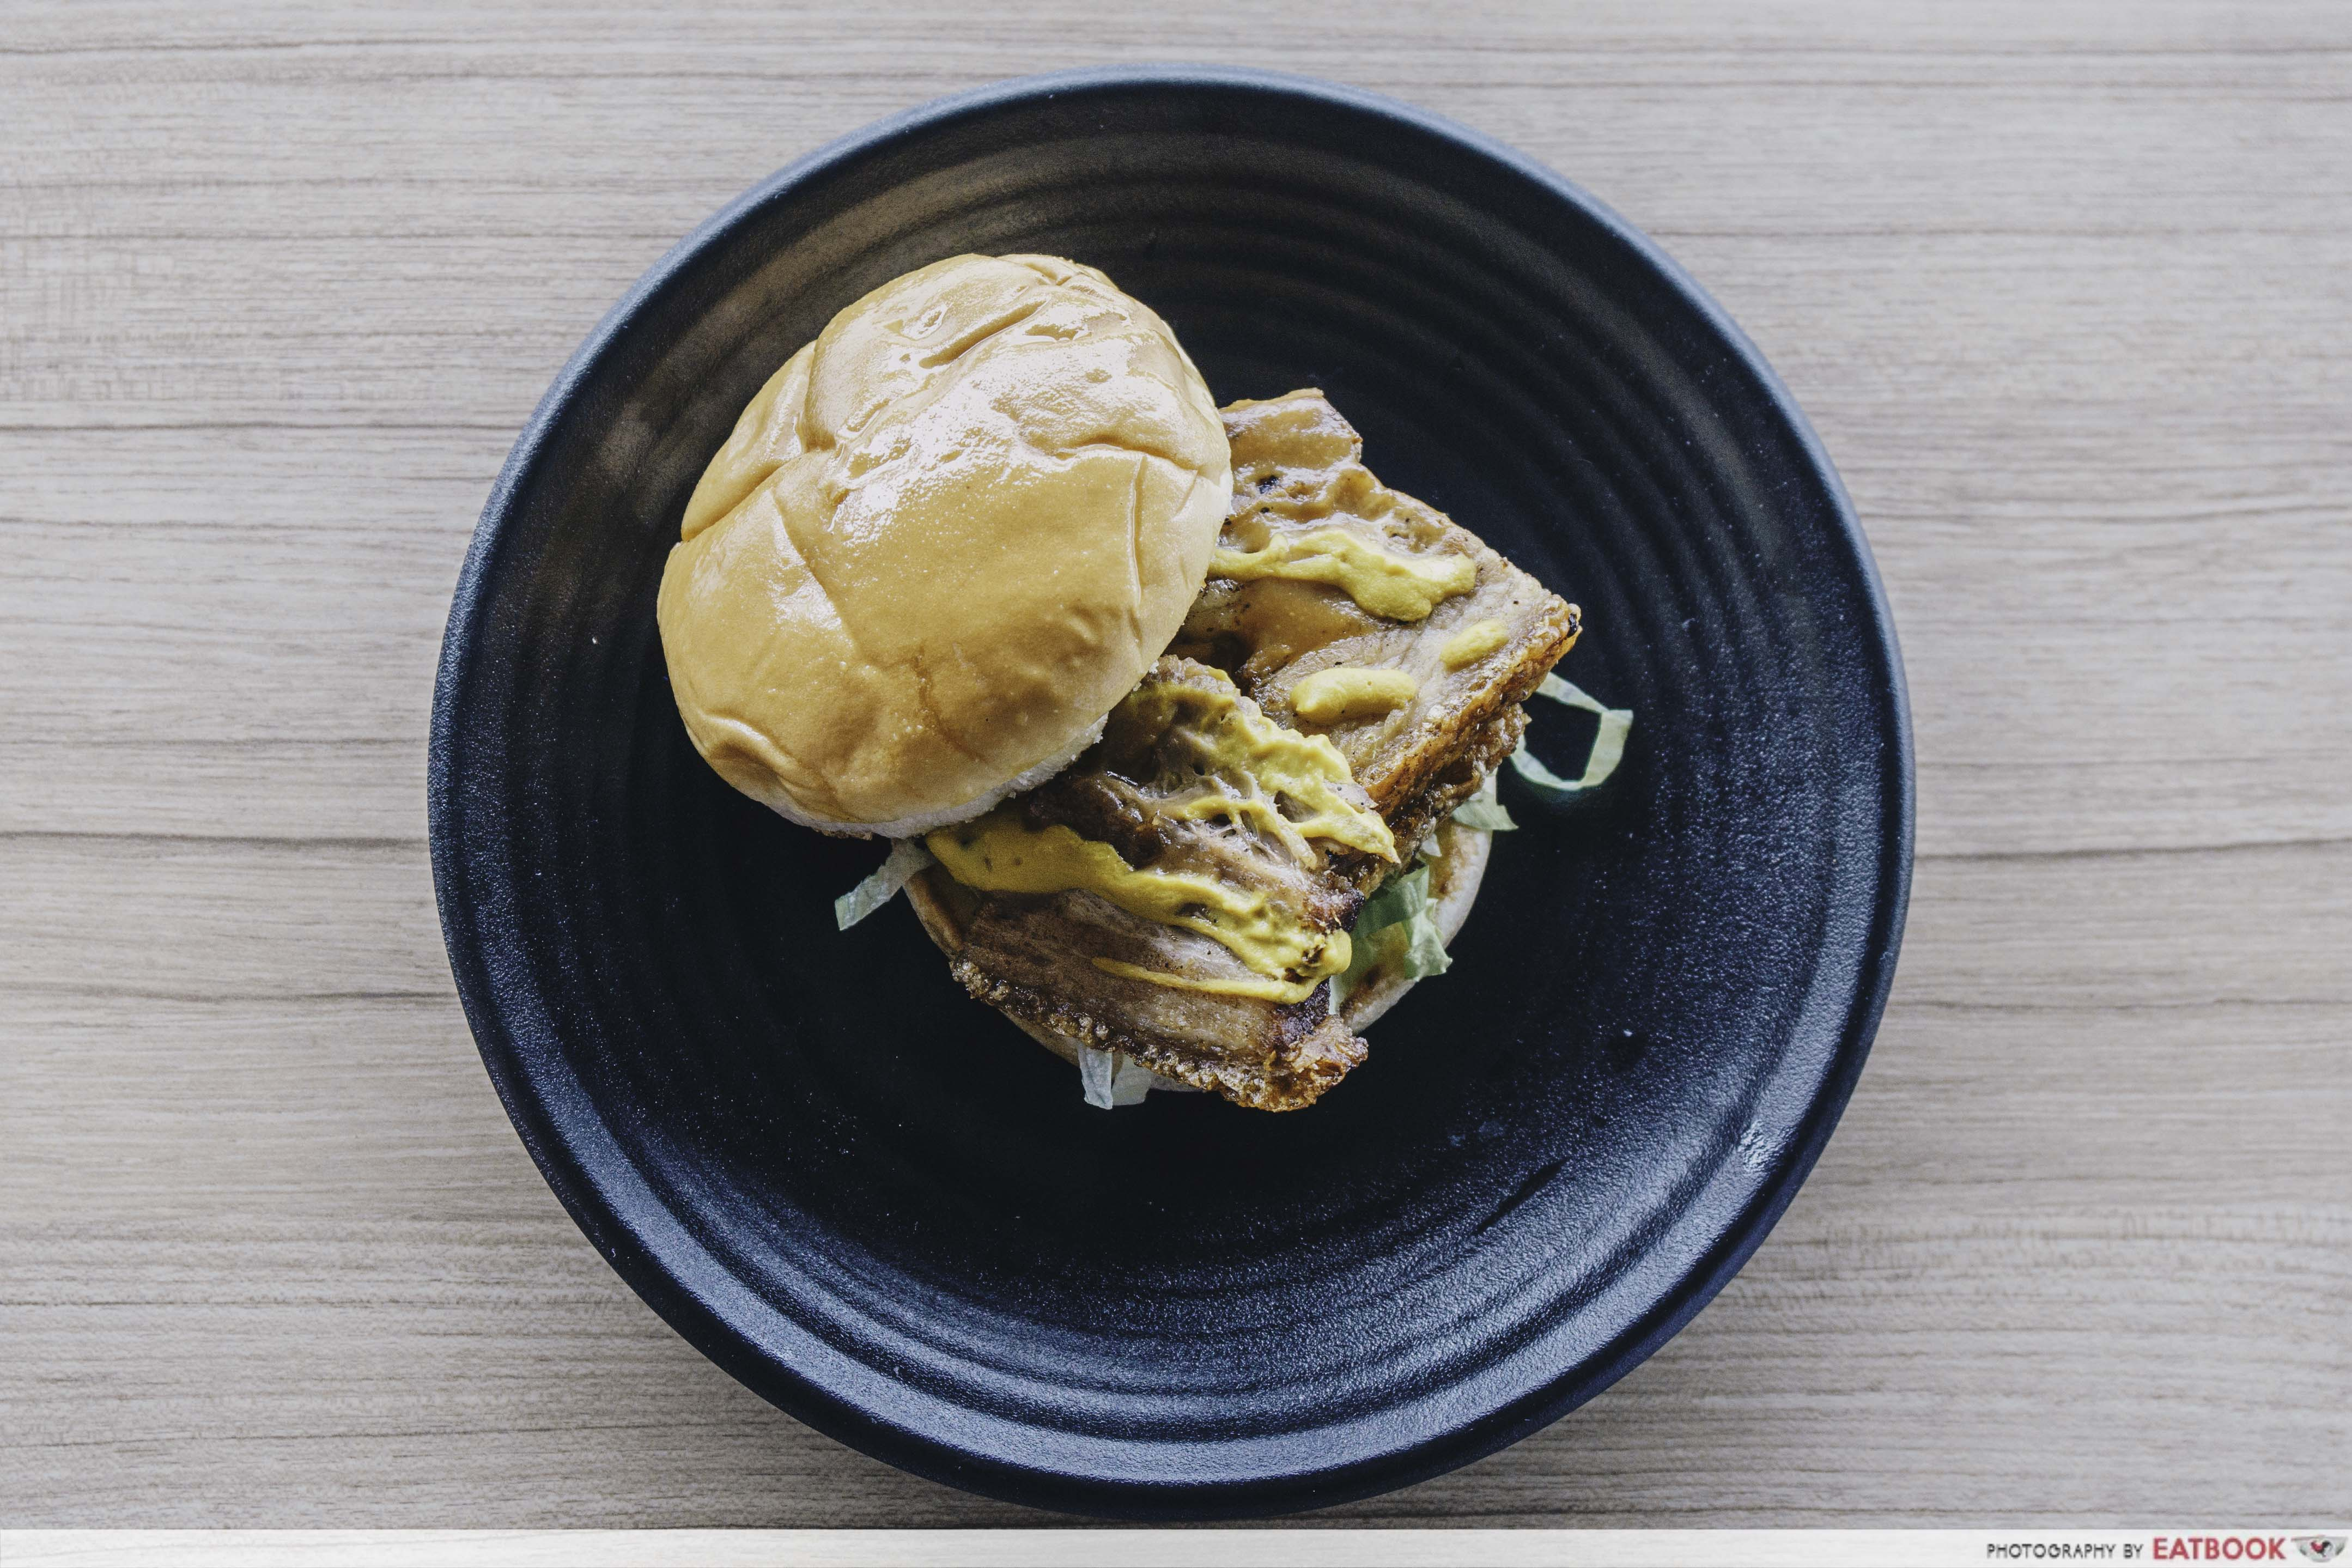 The Humble Burger - Sio Bak Burger